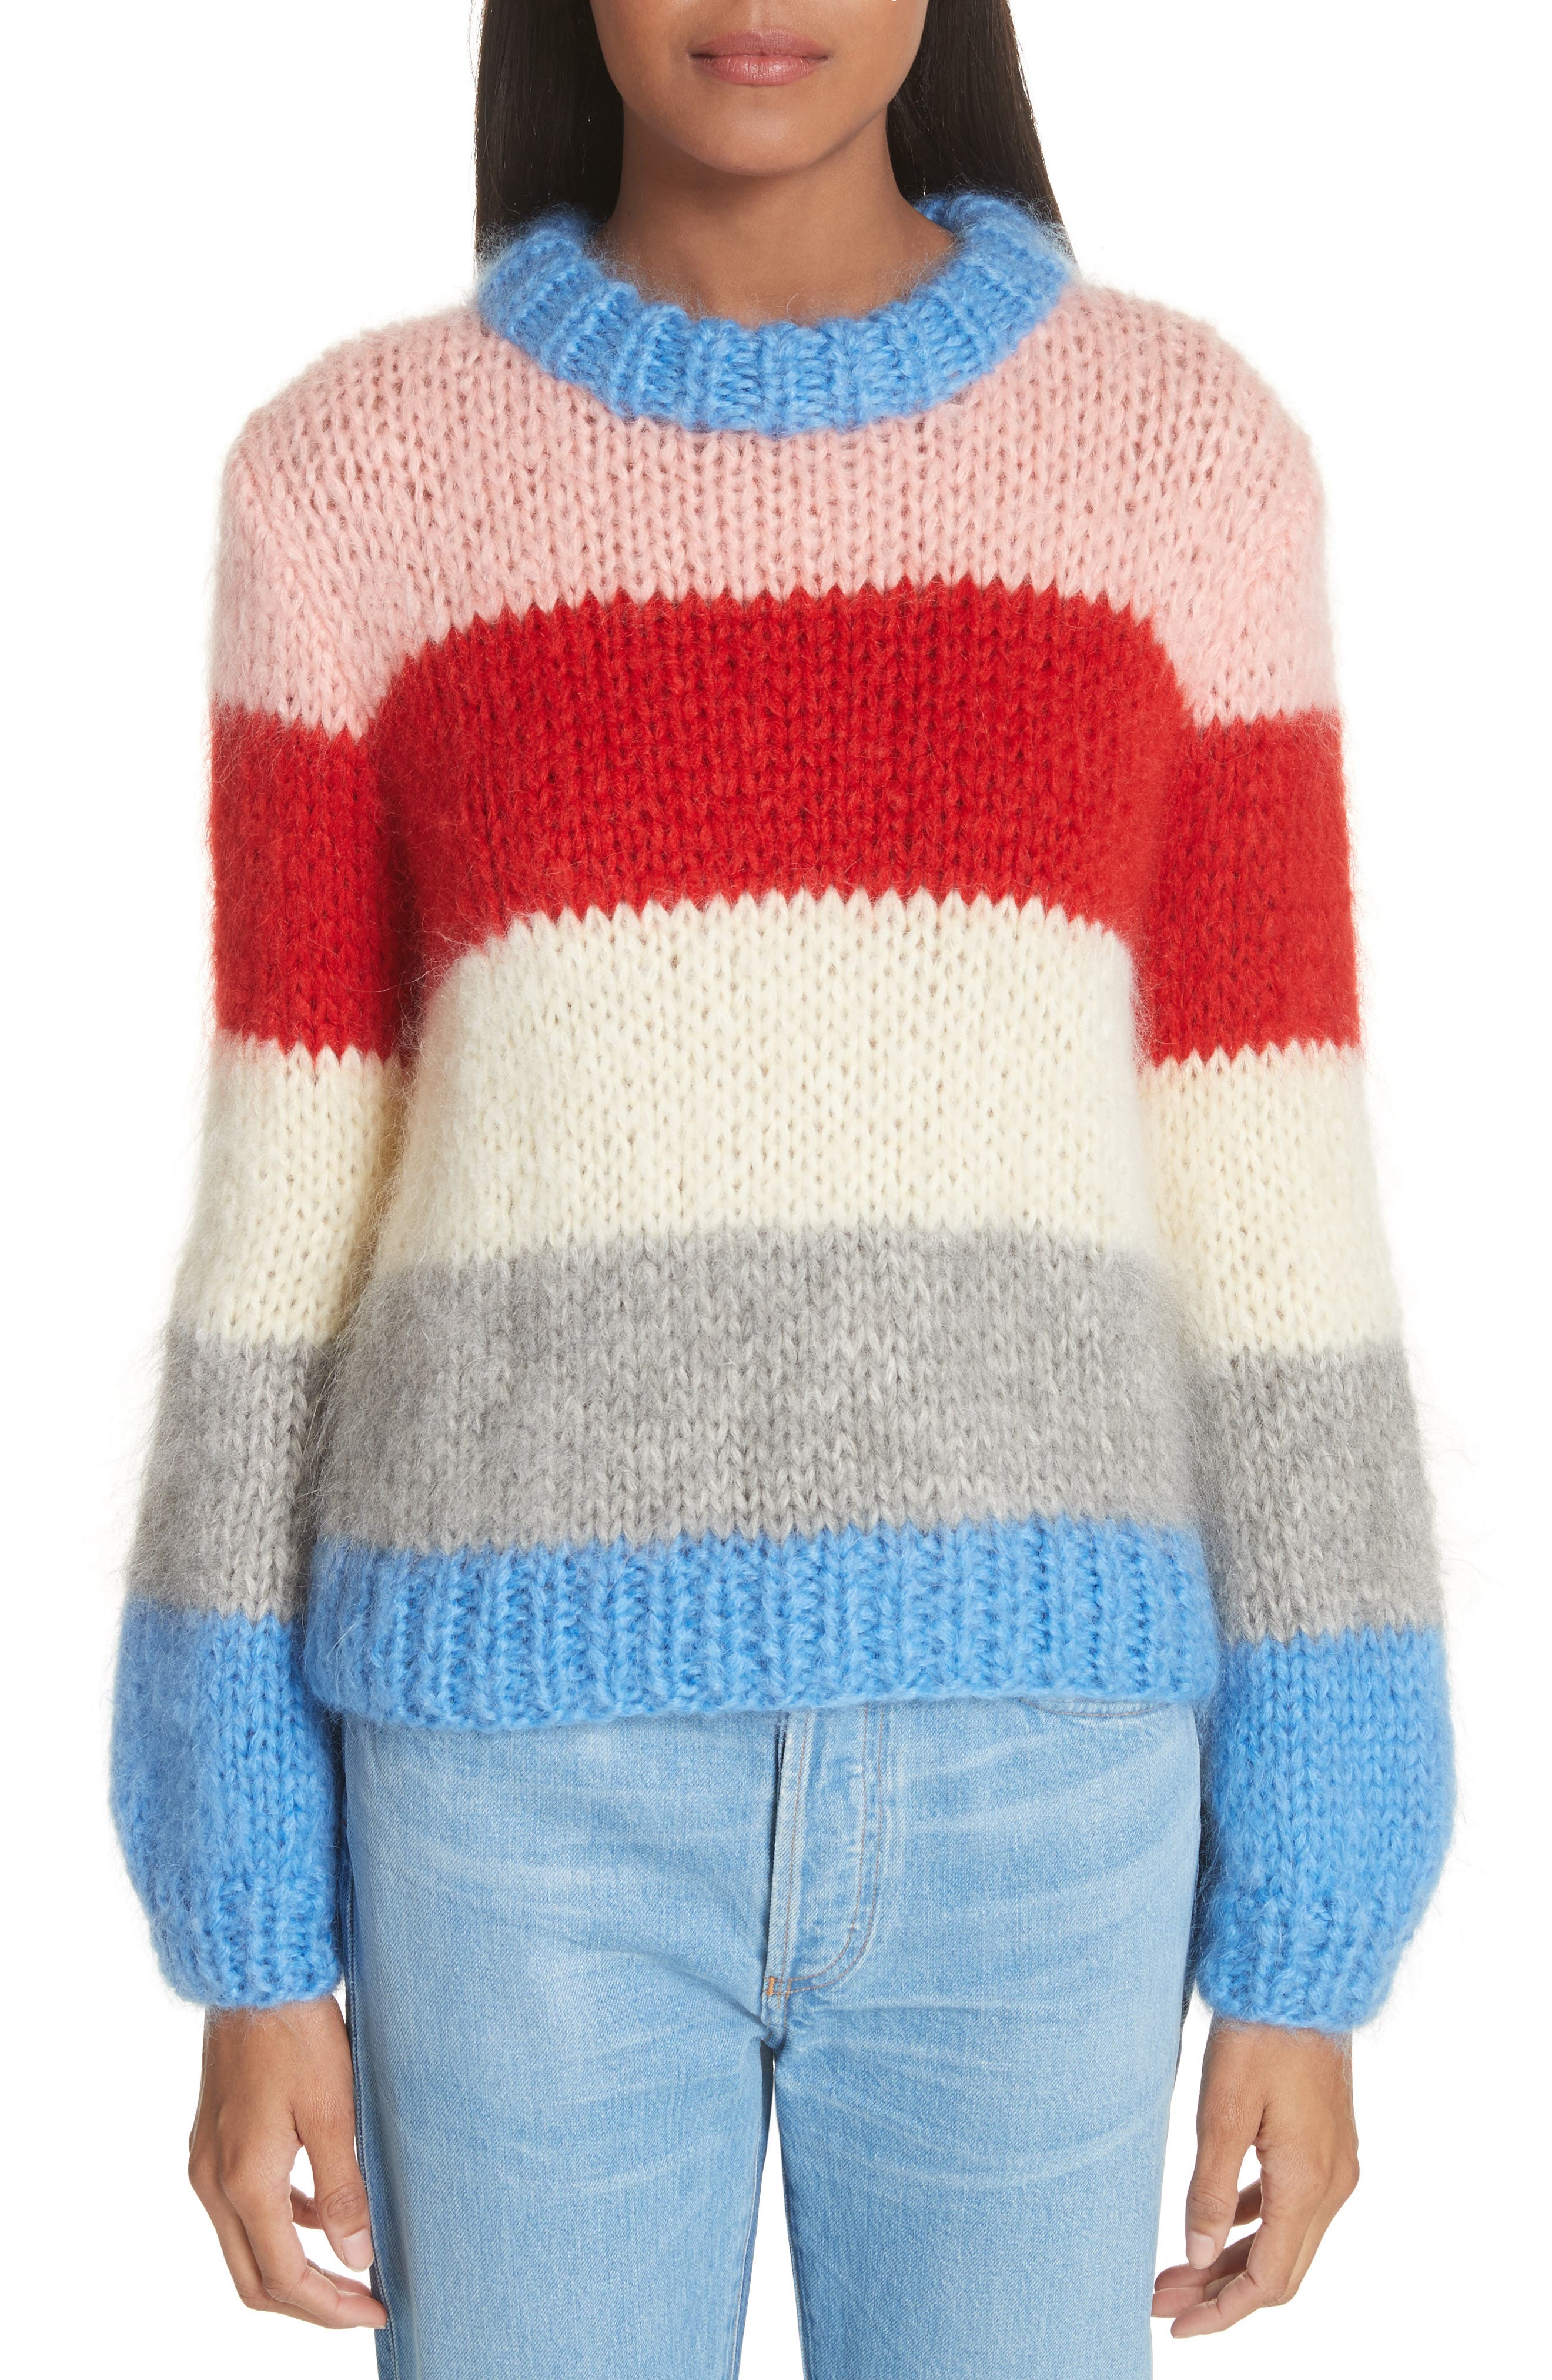 Julliard Multistripe Sweater,                         Main,                         color, 400